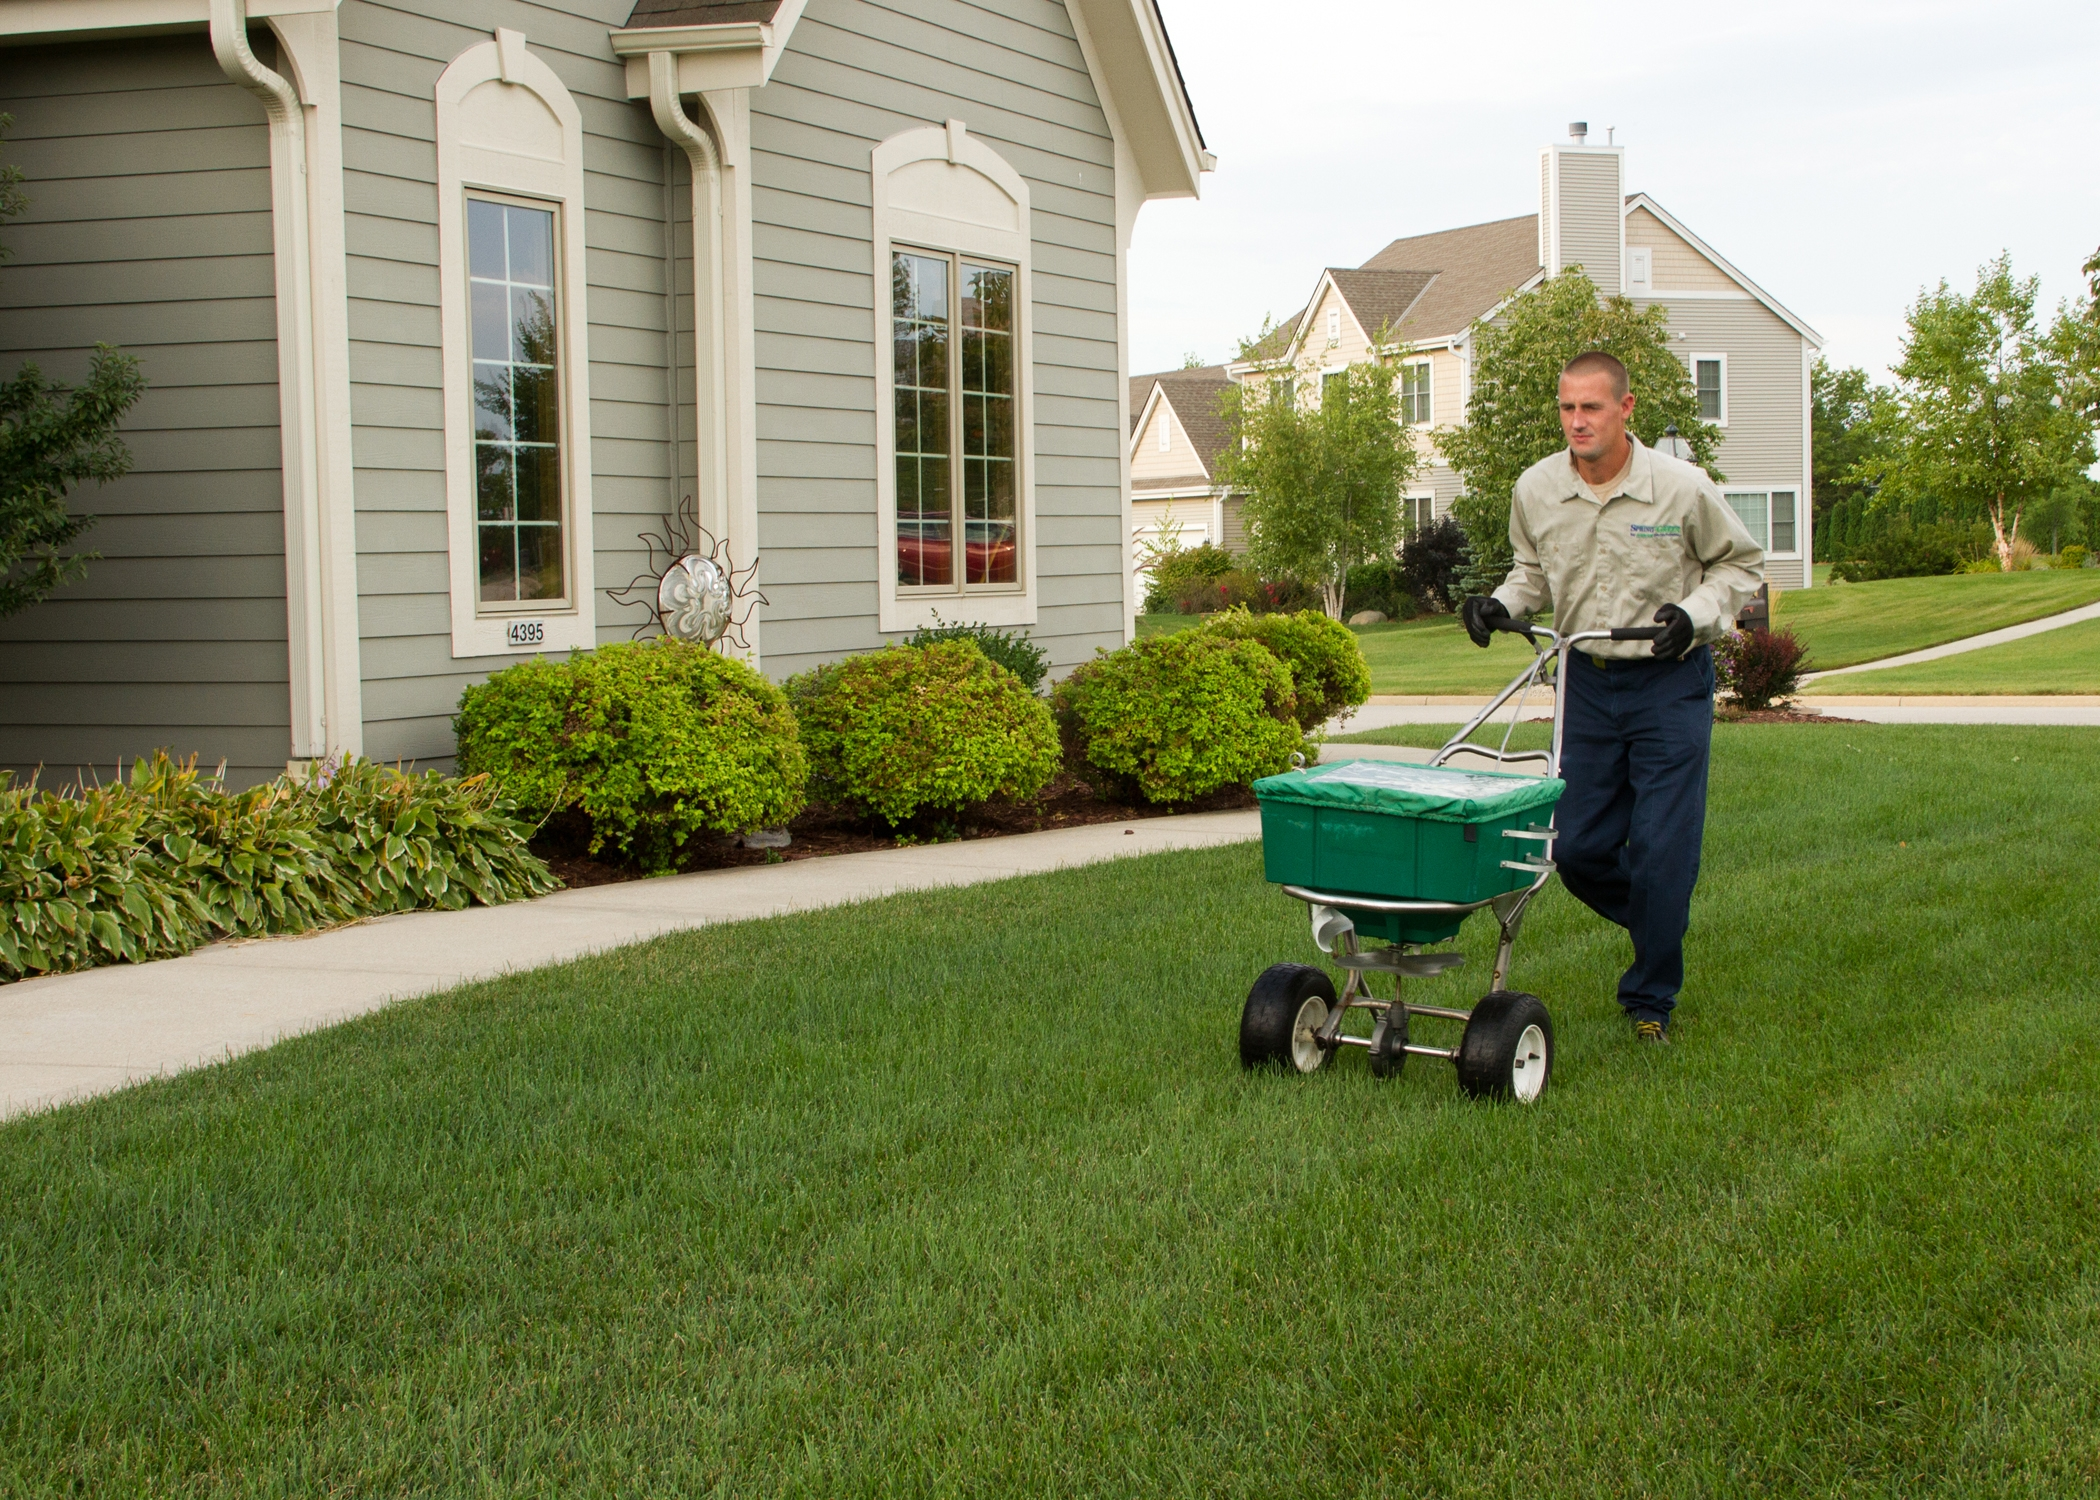 Spring green lawn care galesburg illinois il for Local lawn care services